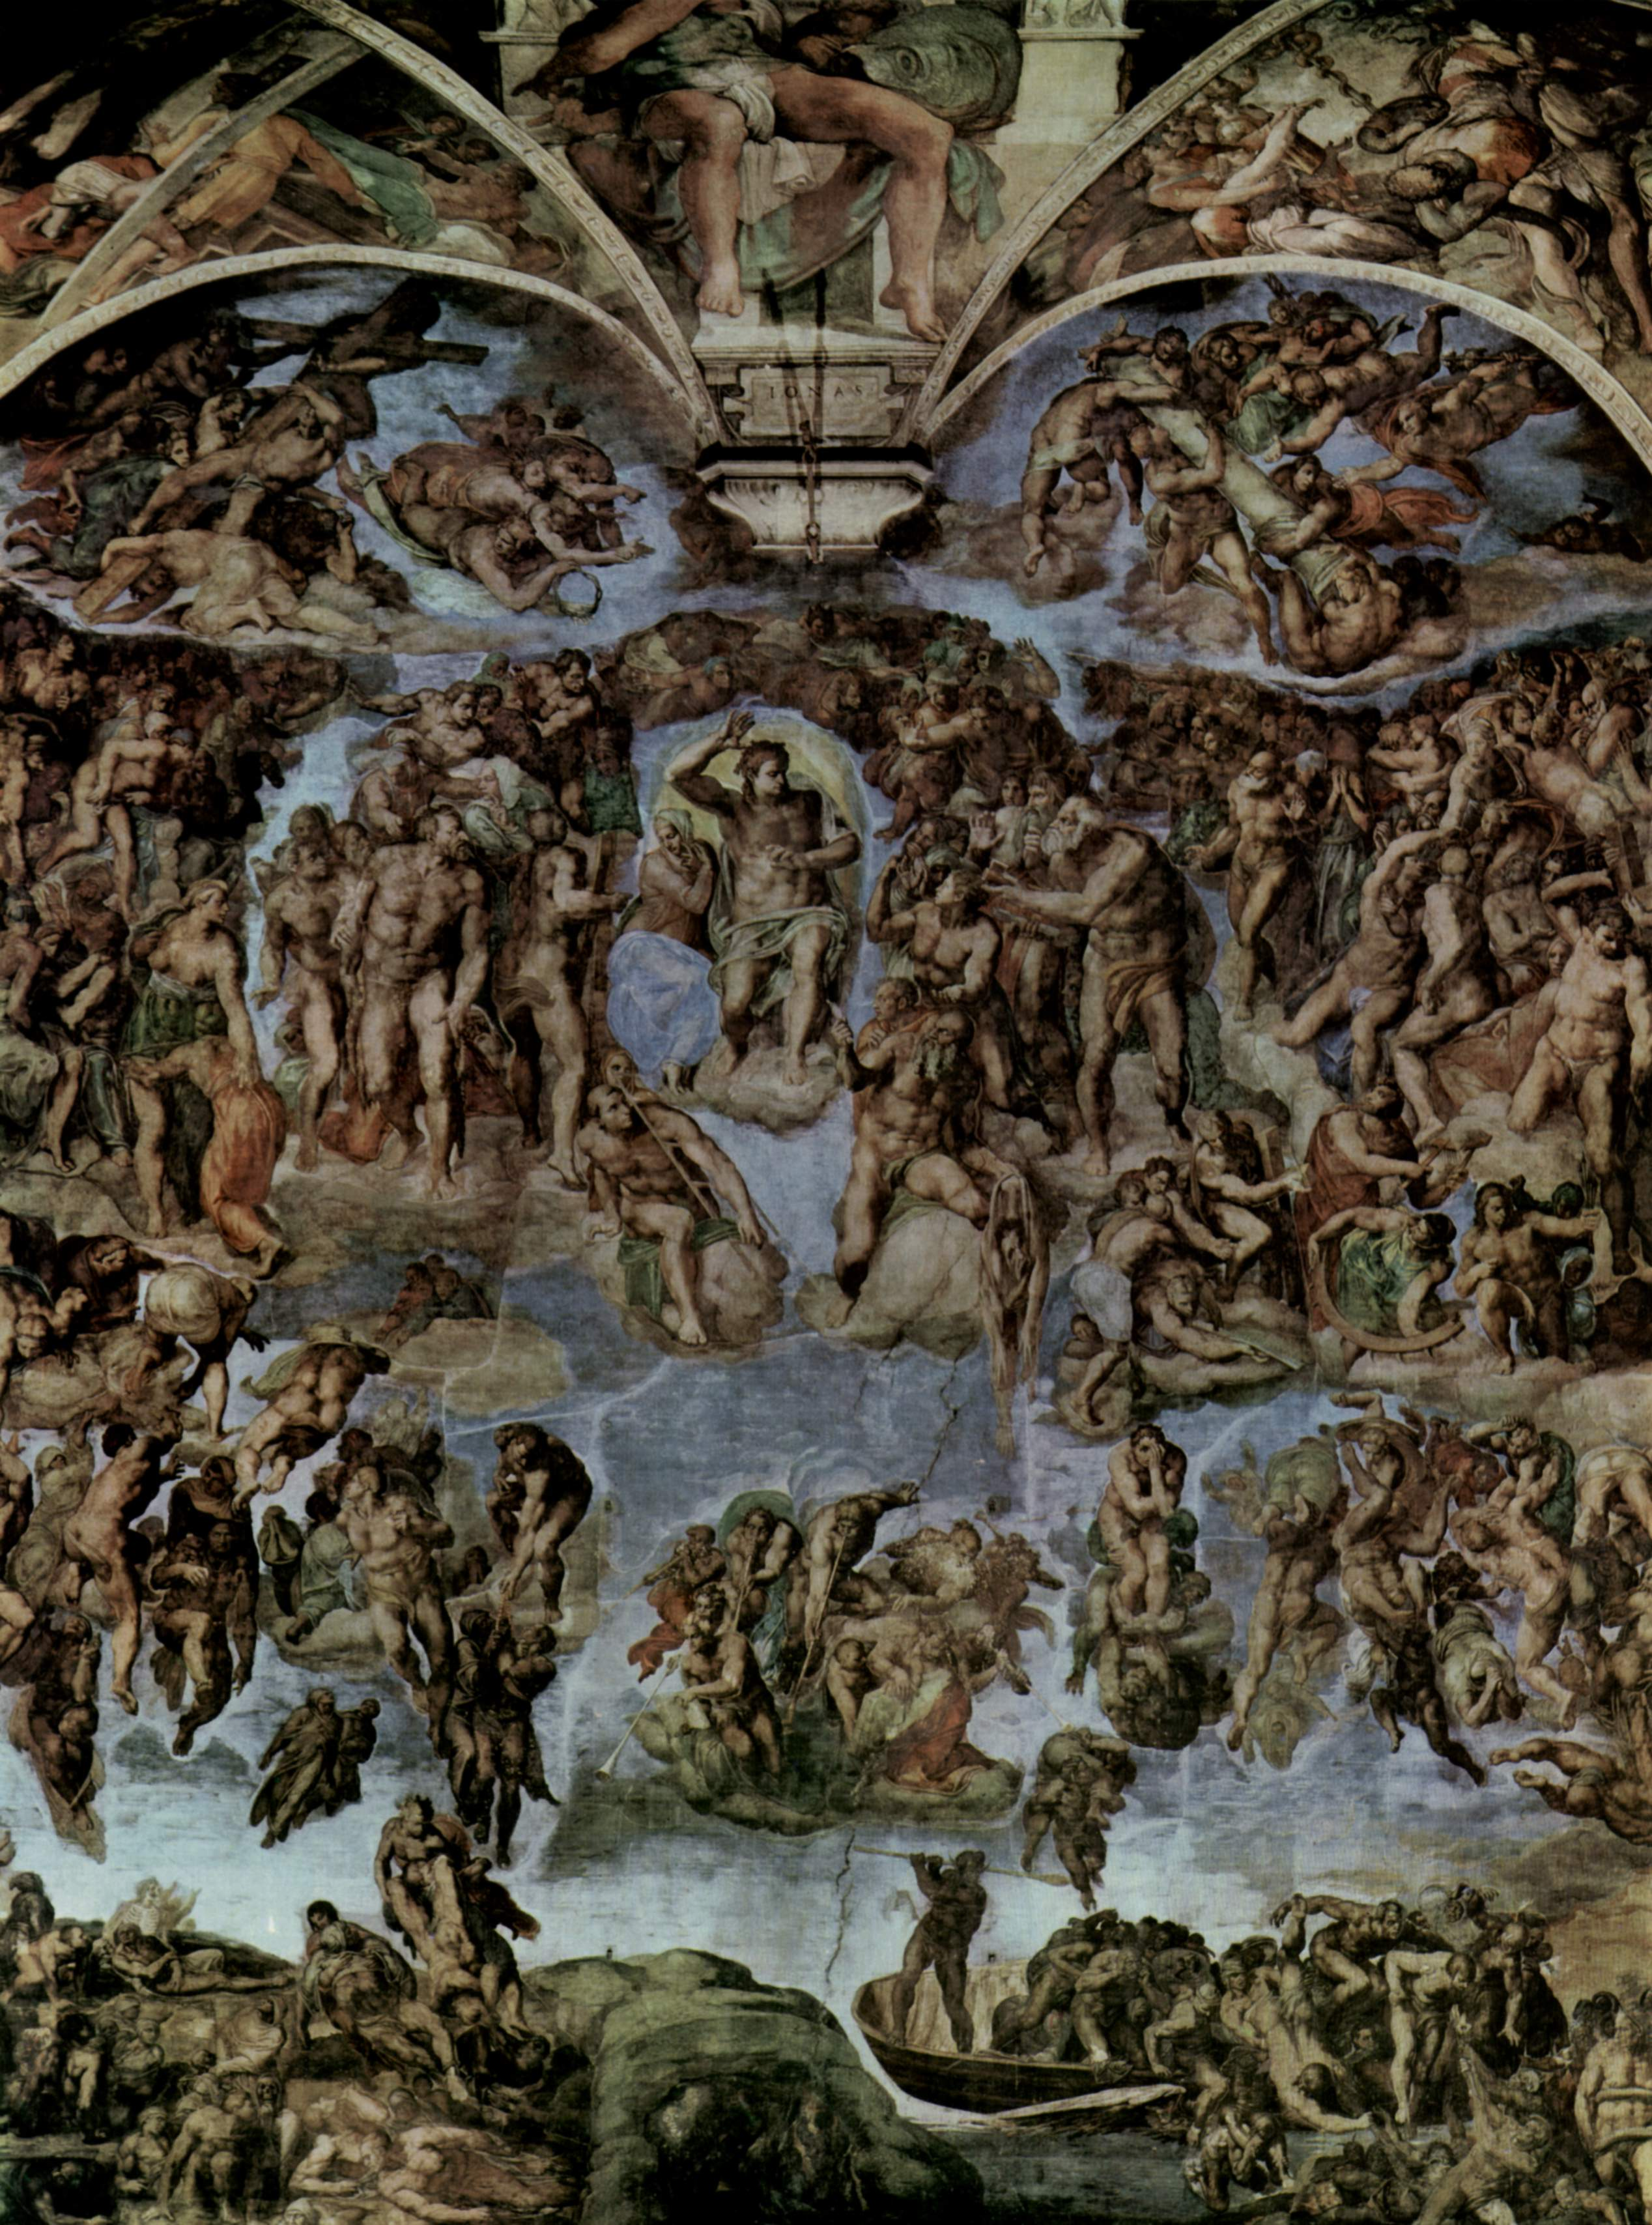 https://upload.wikimedia.org/wikipedia/commons/0/0d/Michelangelo_Buonarroti_011.jpg